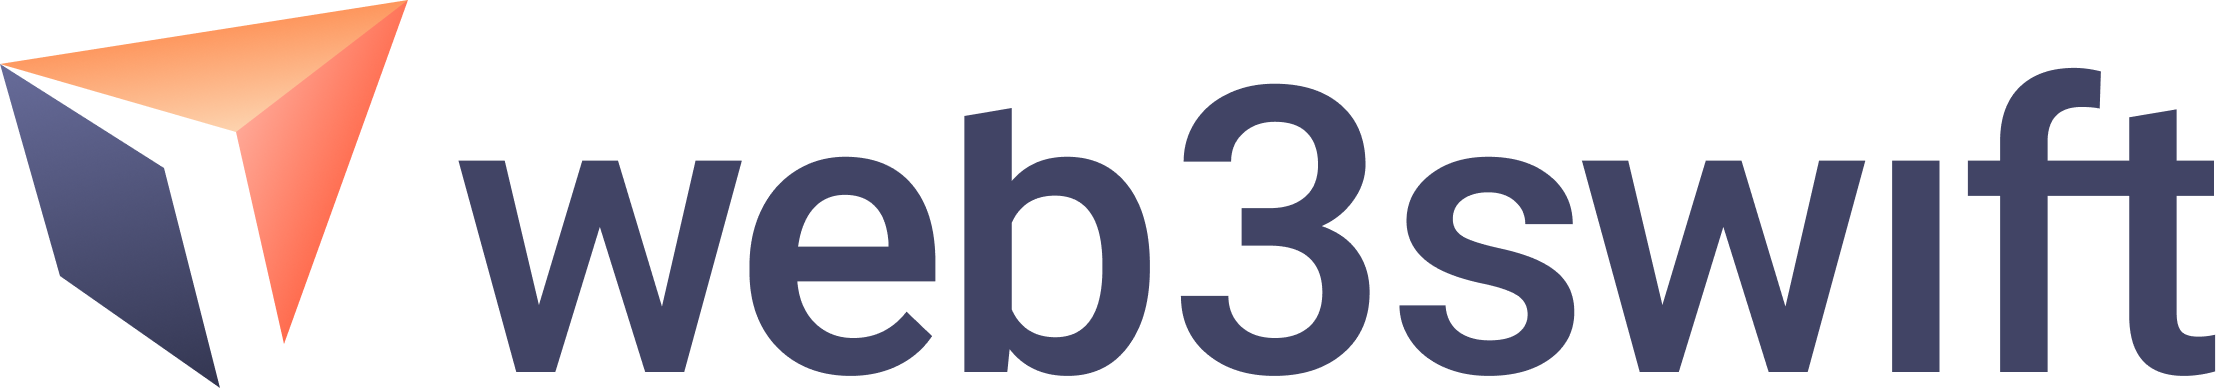 Web3SwiftCompany Logo